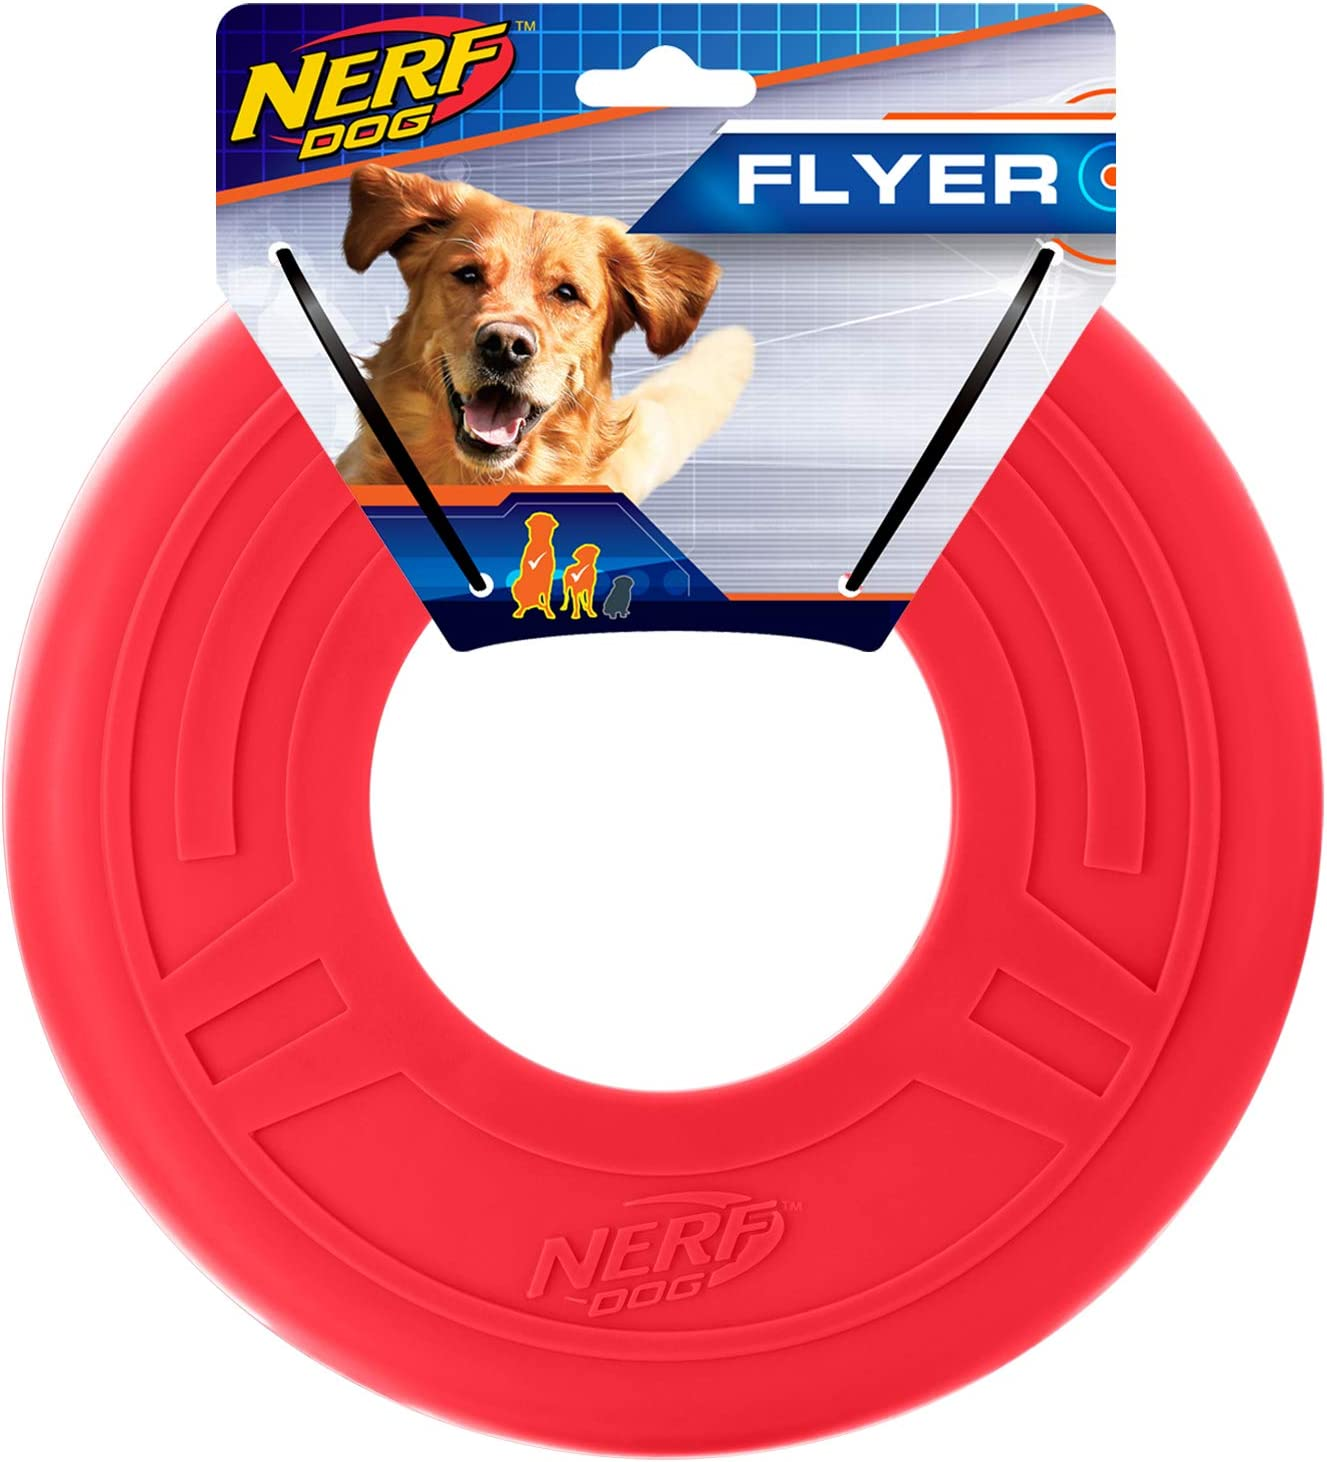 Nerf Dog Atomic Ranking TOP14 Flyer Toy Lightweight Frisbee Durable and Super-cheap